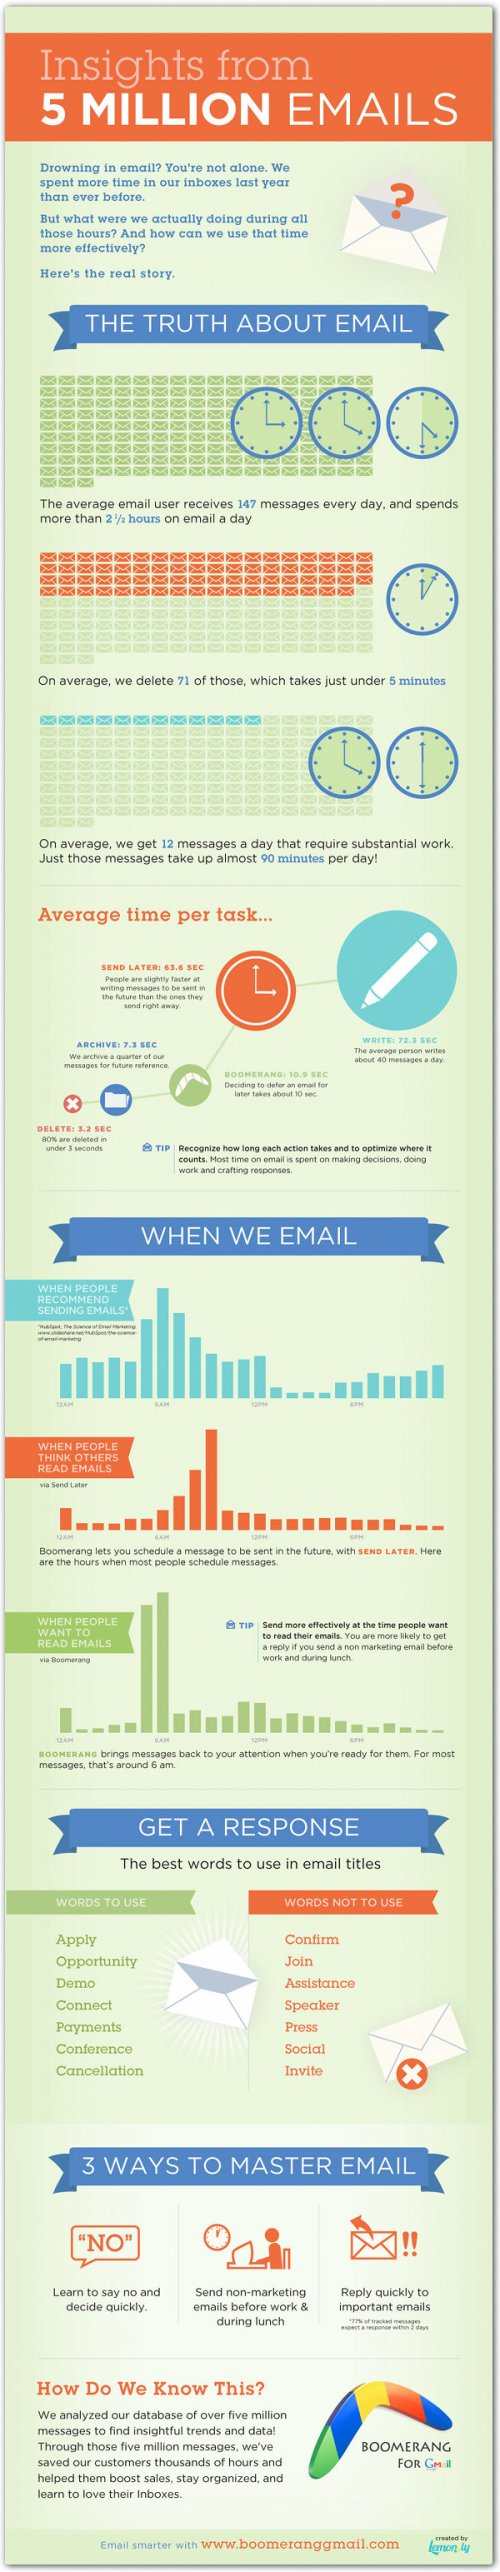 Email stats infographic